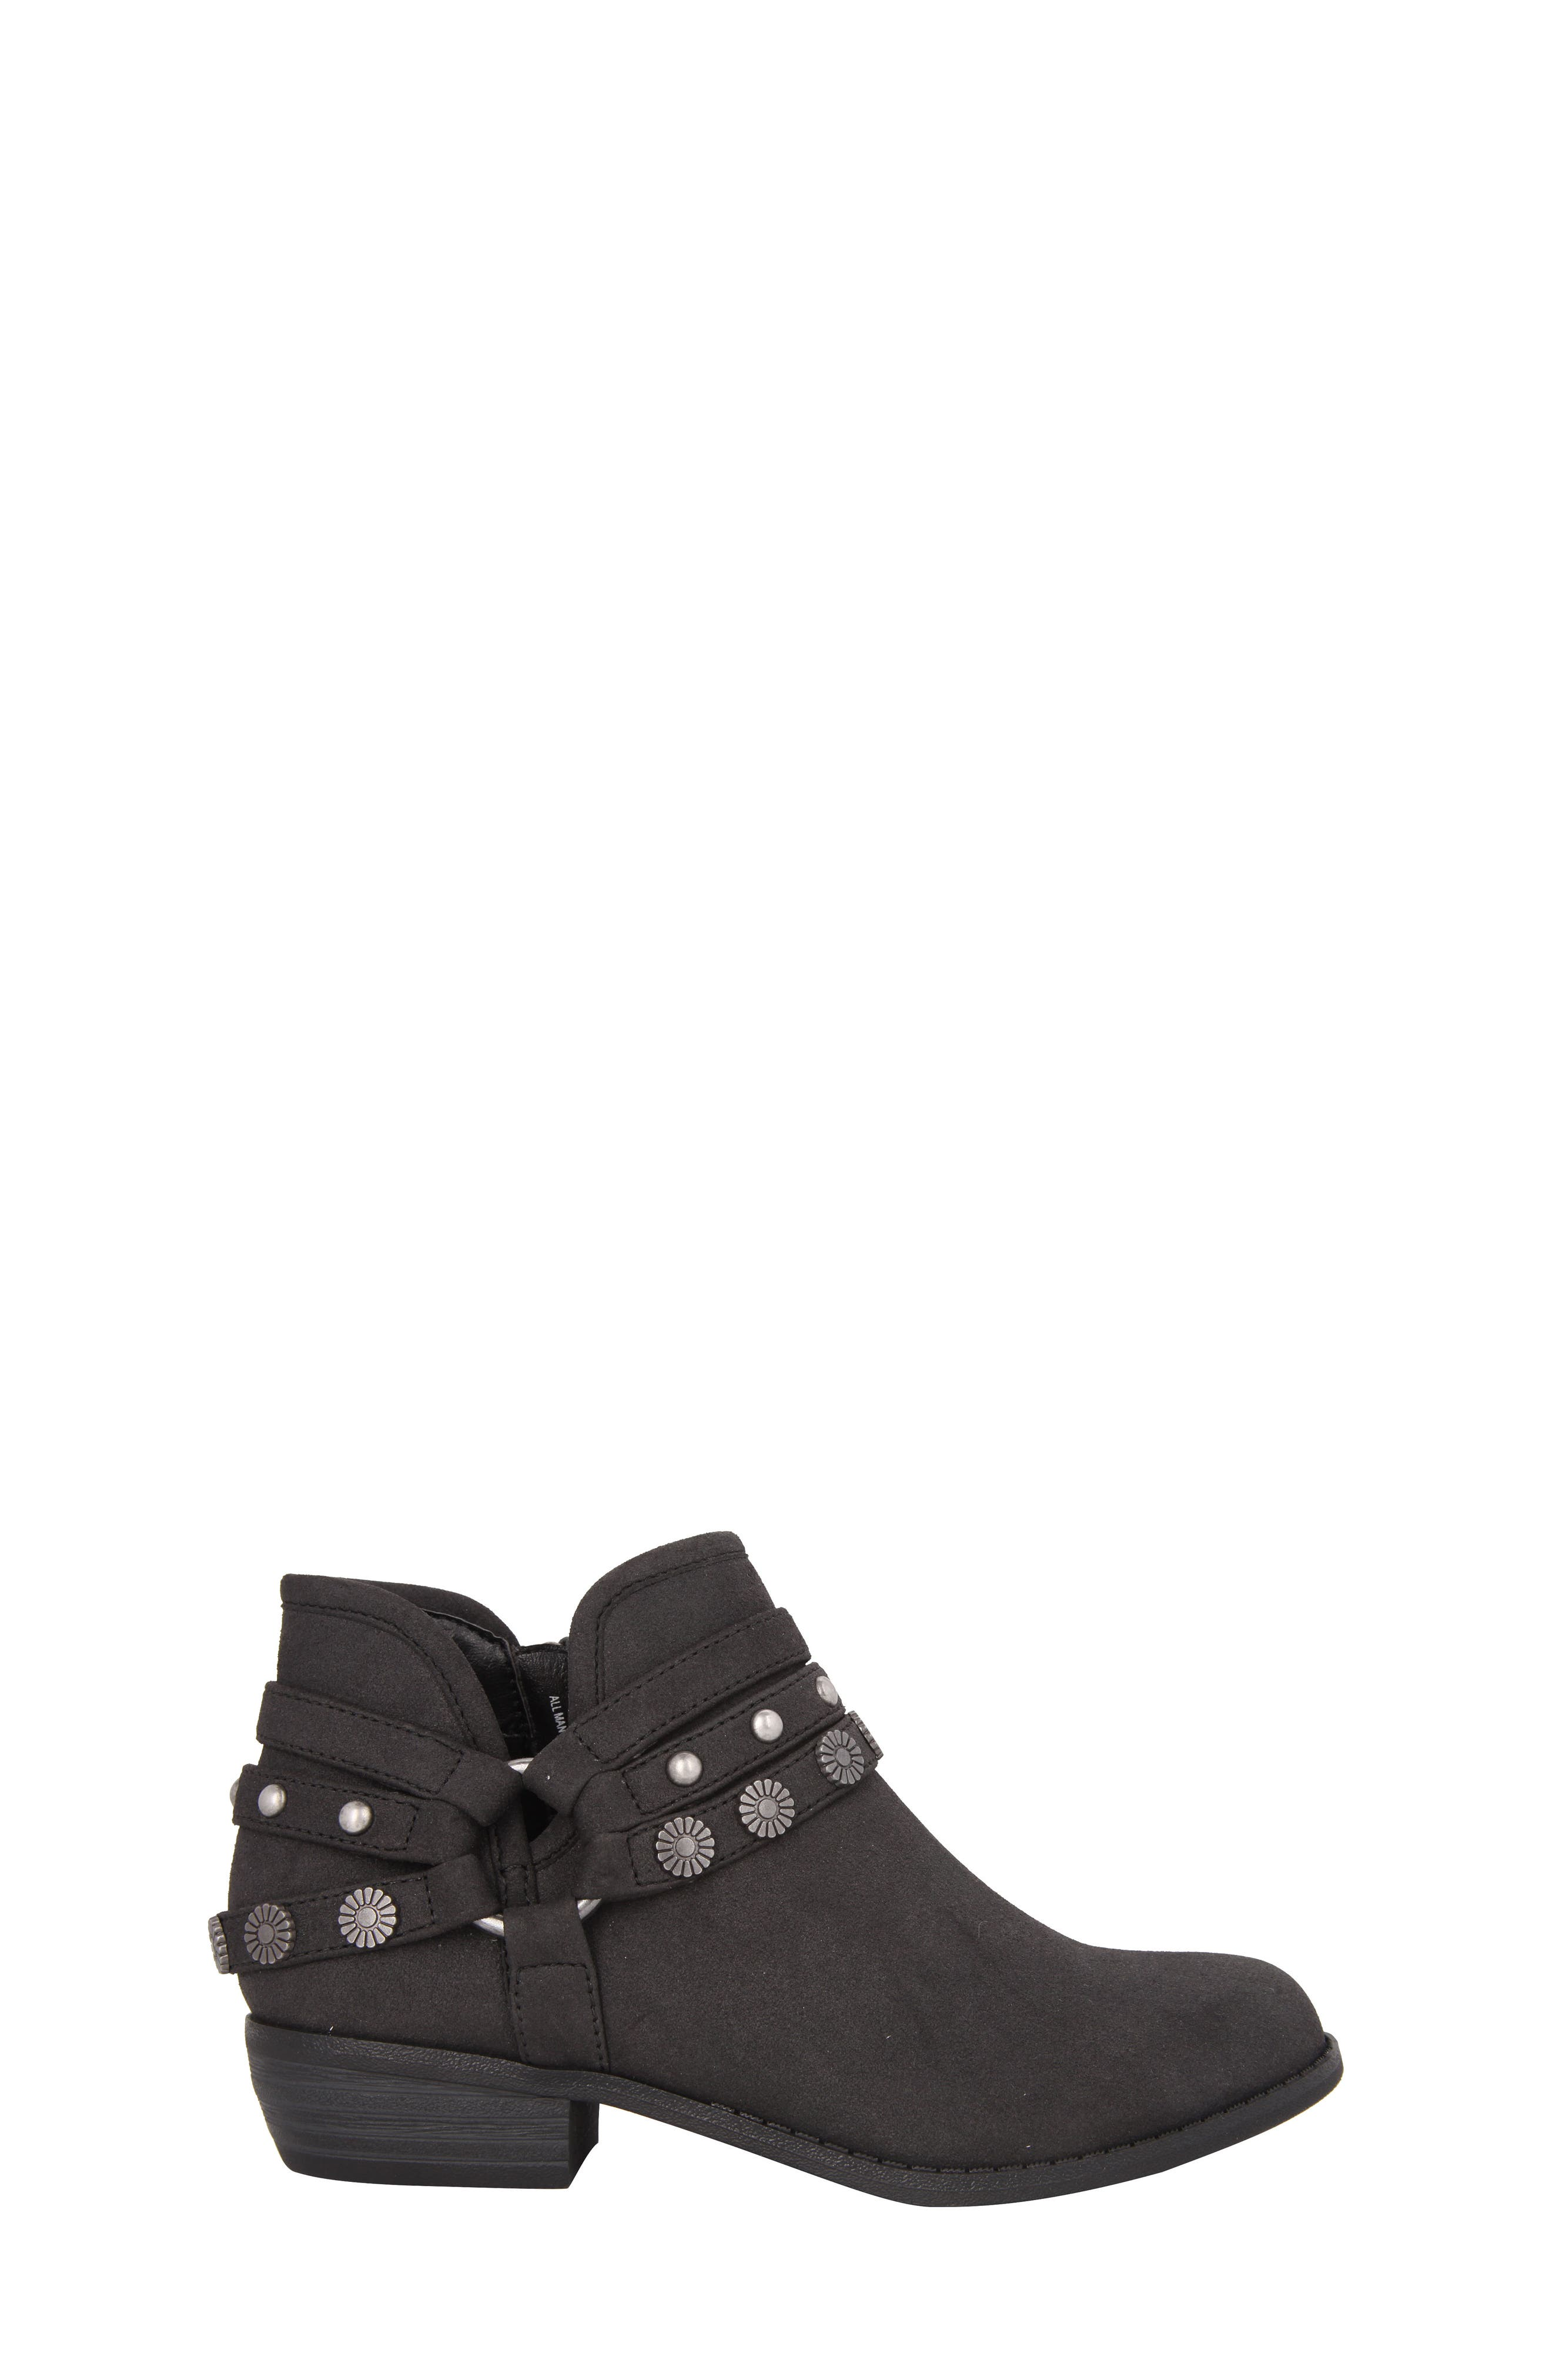 Zoe Strappy Low Bootie,                             Alternate thumbnail 3, color,                             003